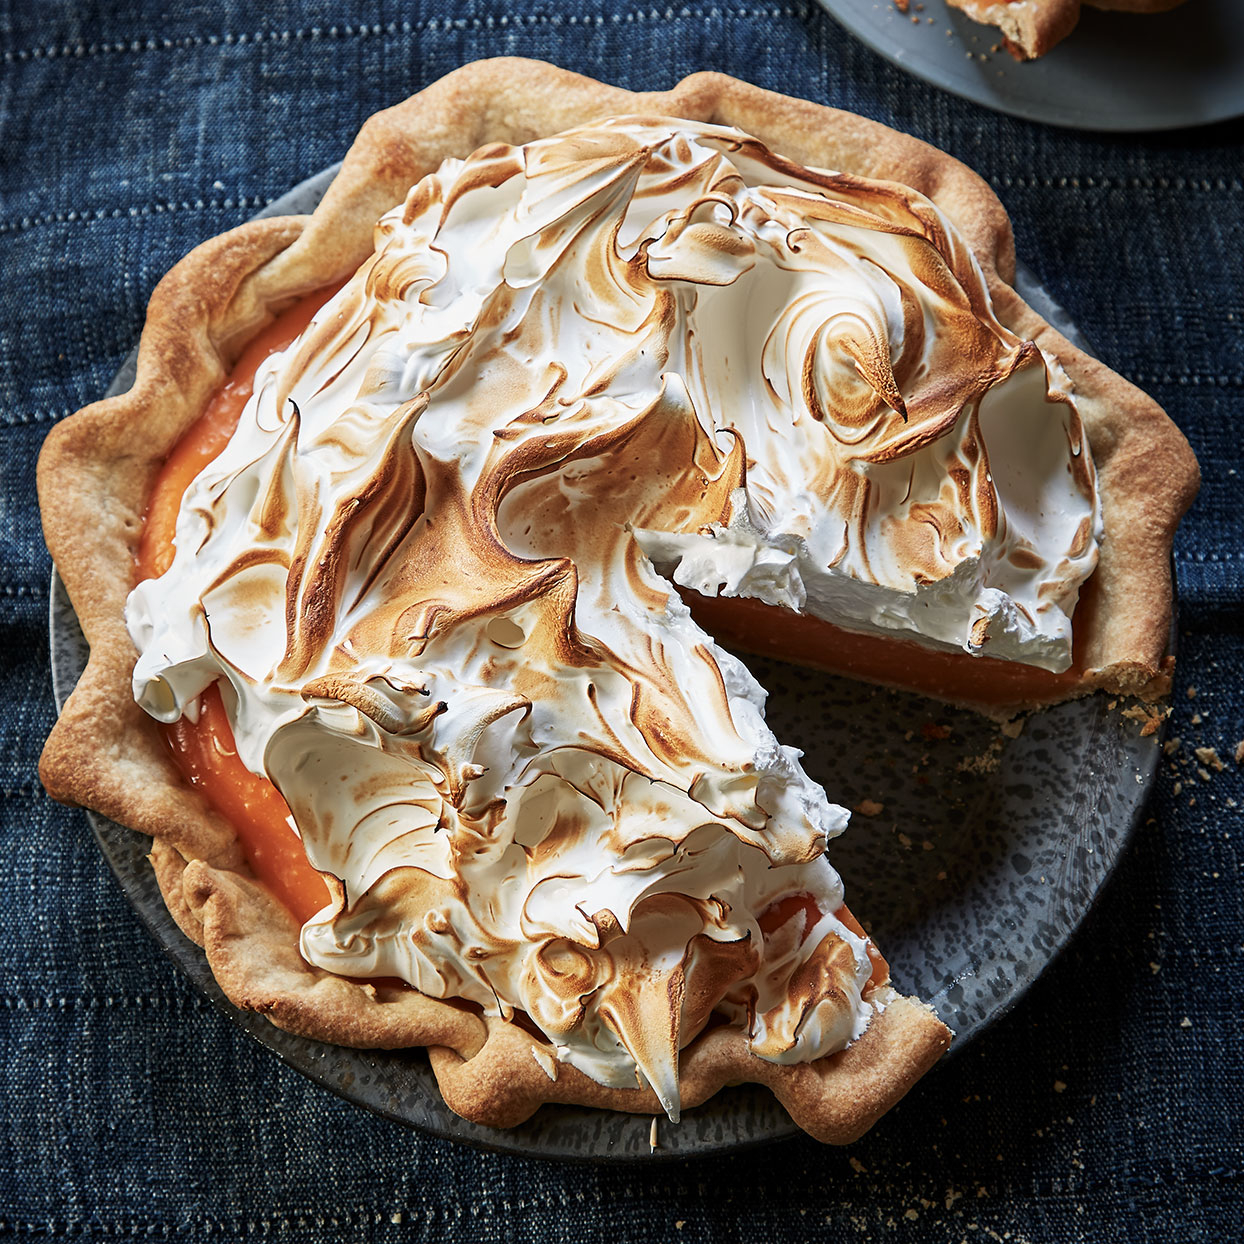 For this pie's filling we call for fresh squeezed grapefruit juice, but store-bought (not frozen) works well and may even give you more brightly colored results. The Italian meringue topping is made by beating hot sugar syrup into egg whites that are already beaten to stiff peaks. It's a bit more effort, but the meringue holds its shape longer.Source: EatingWell Magazine, November 2019